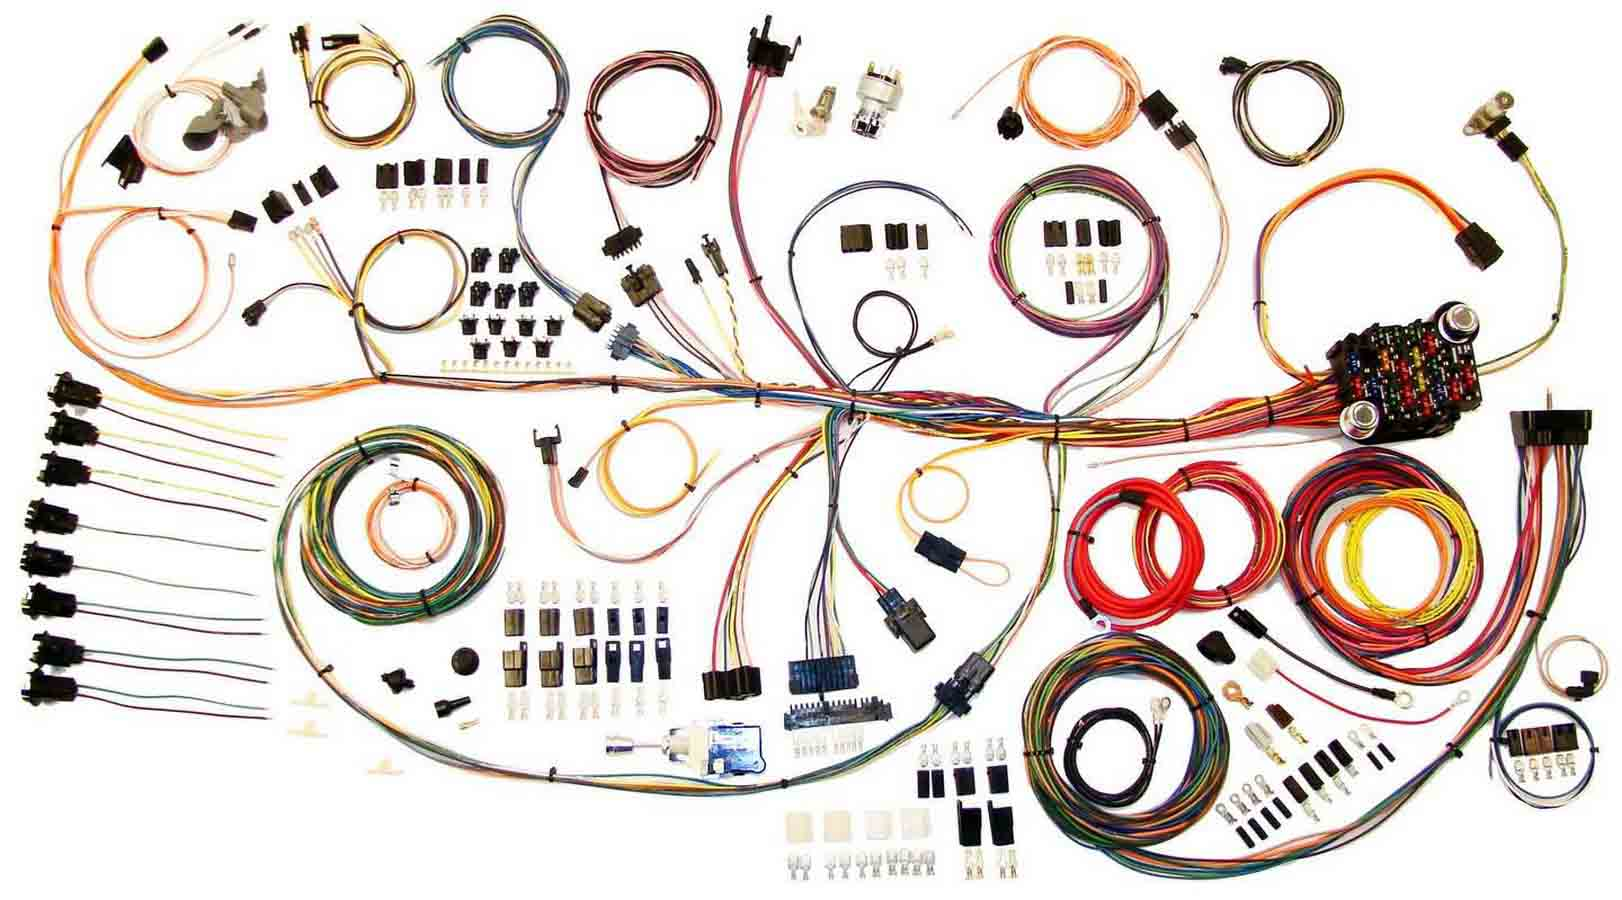 1969 Gto Wiring Harness Library 69 Chevy C10 64 67